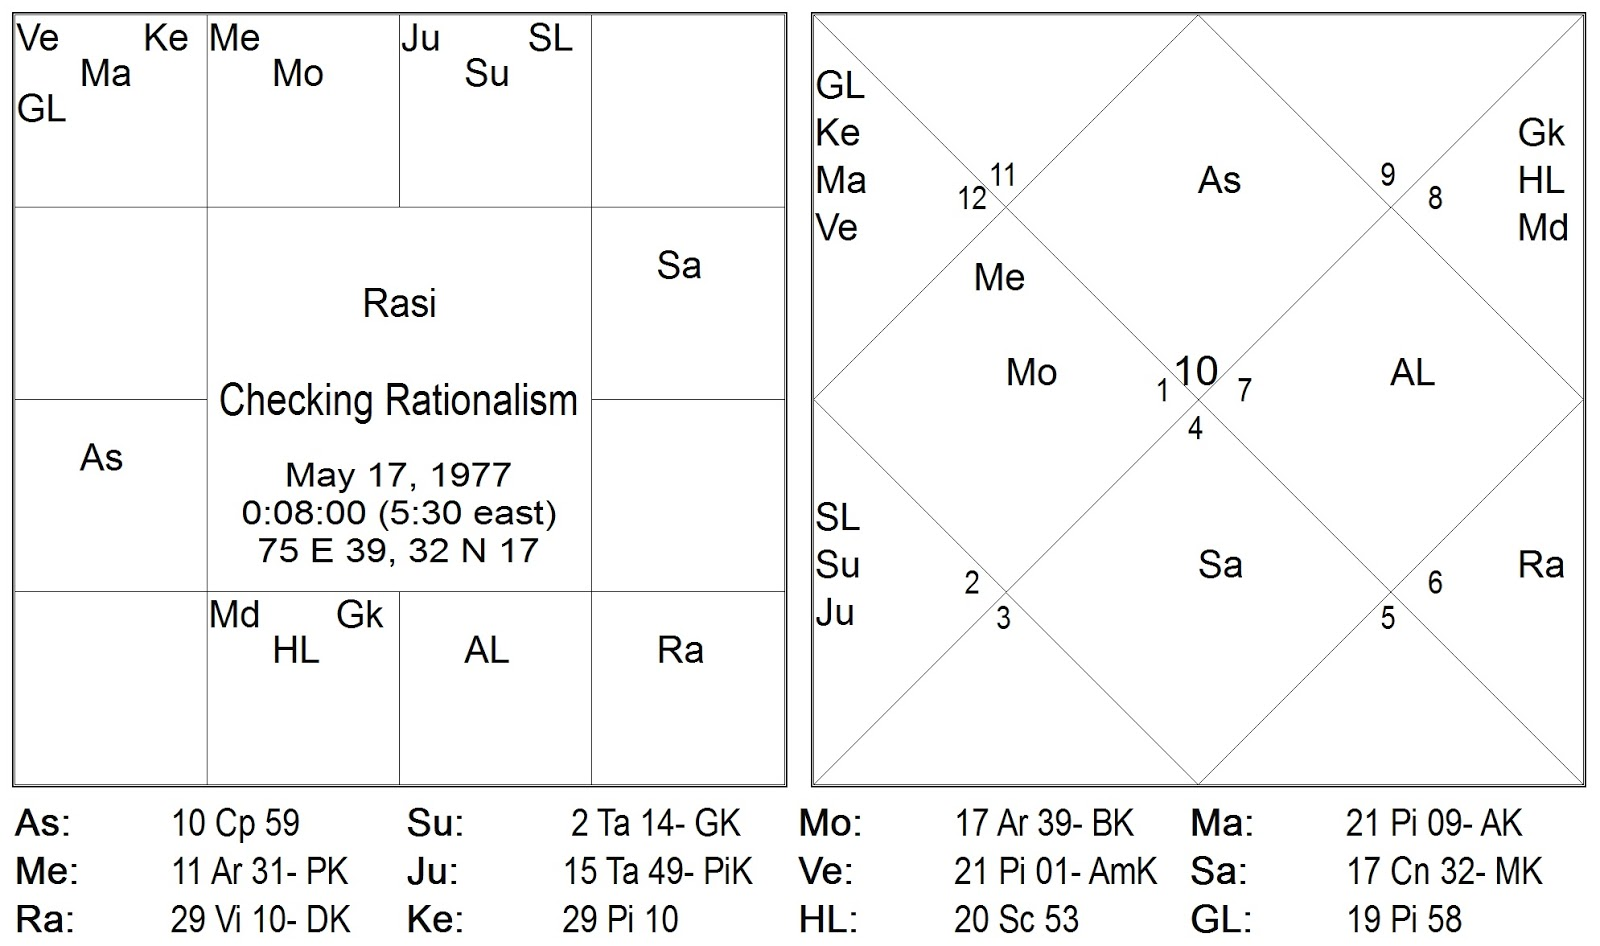 R hu is not only in virgo a sign ruled by mercury but also in the 9th house which is that of the guru or the guiding principles in life